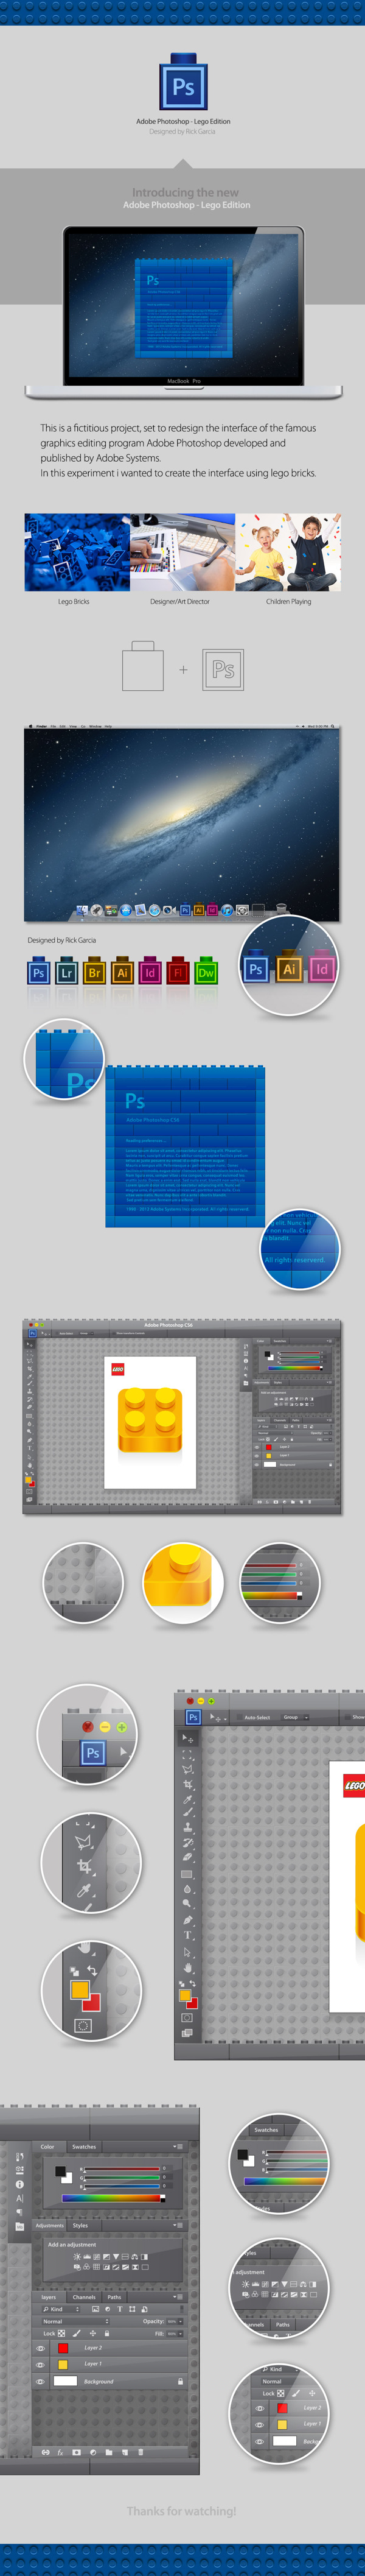 Adobe Photoshop interface Recreated Using Lego